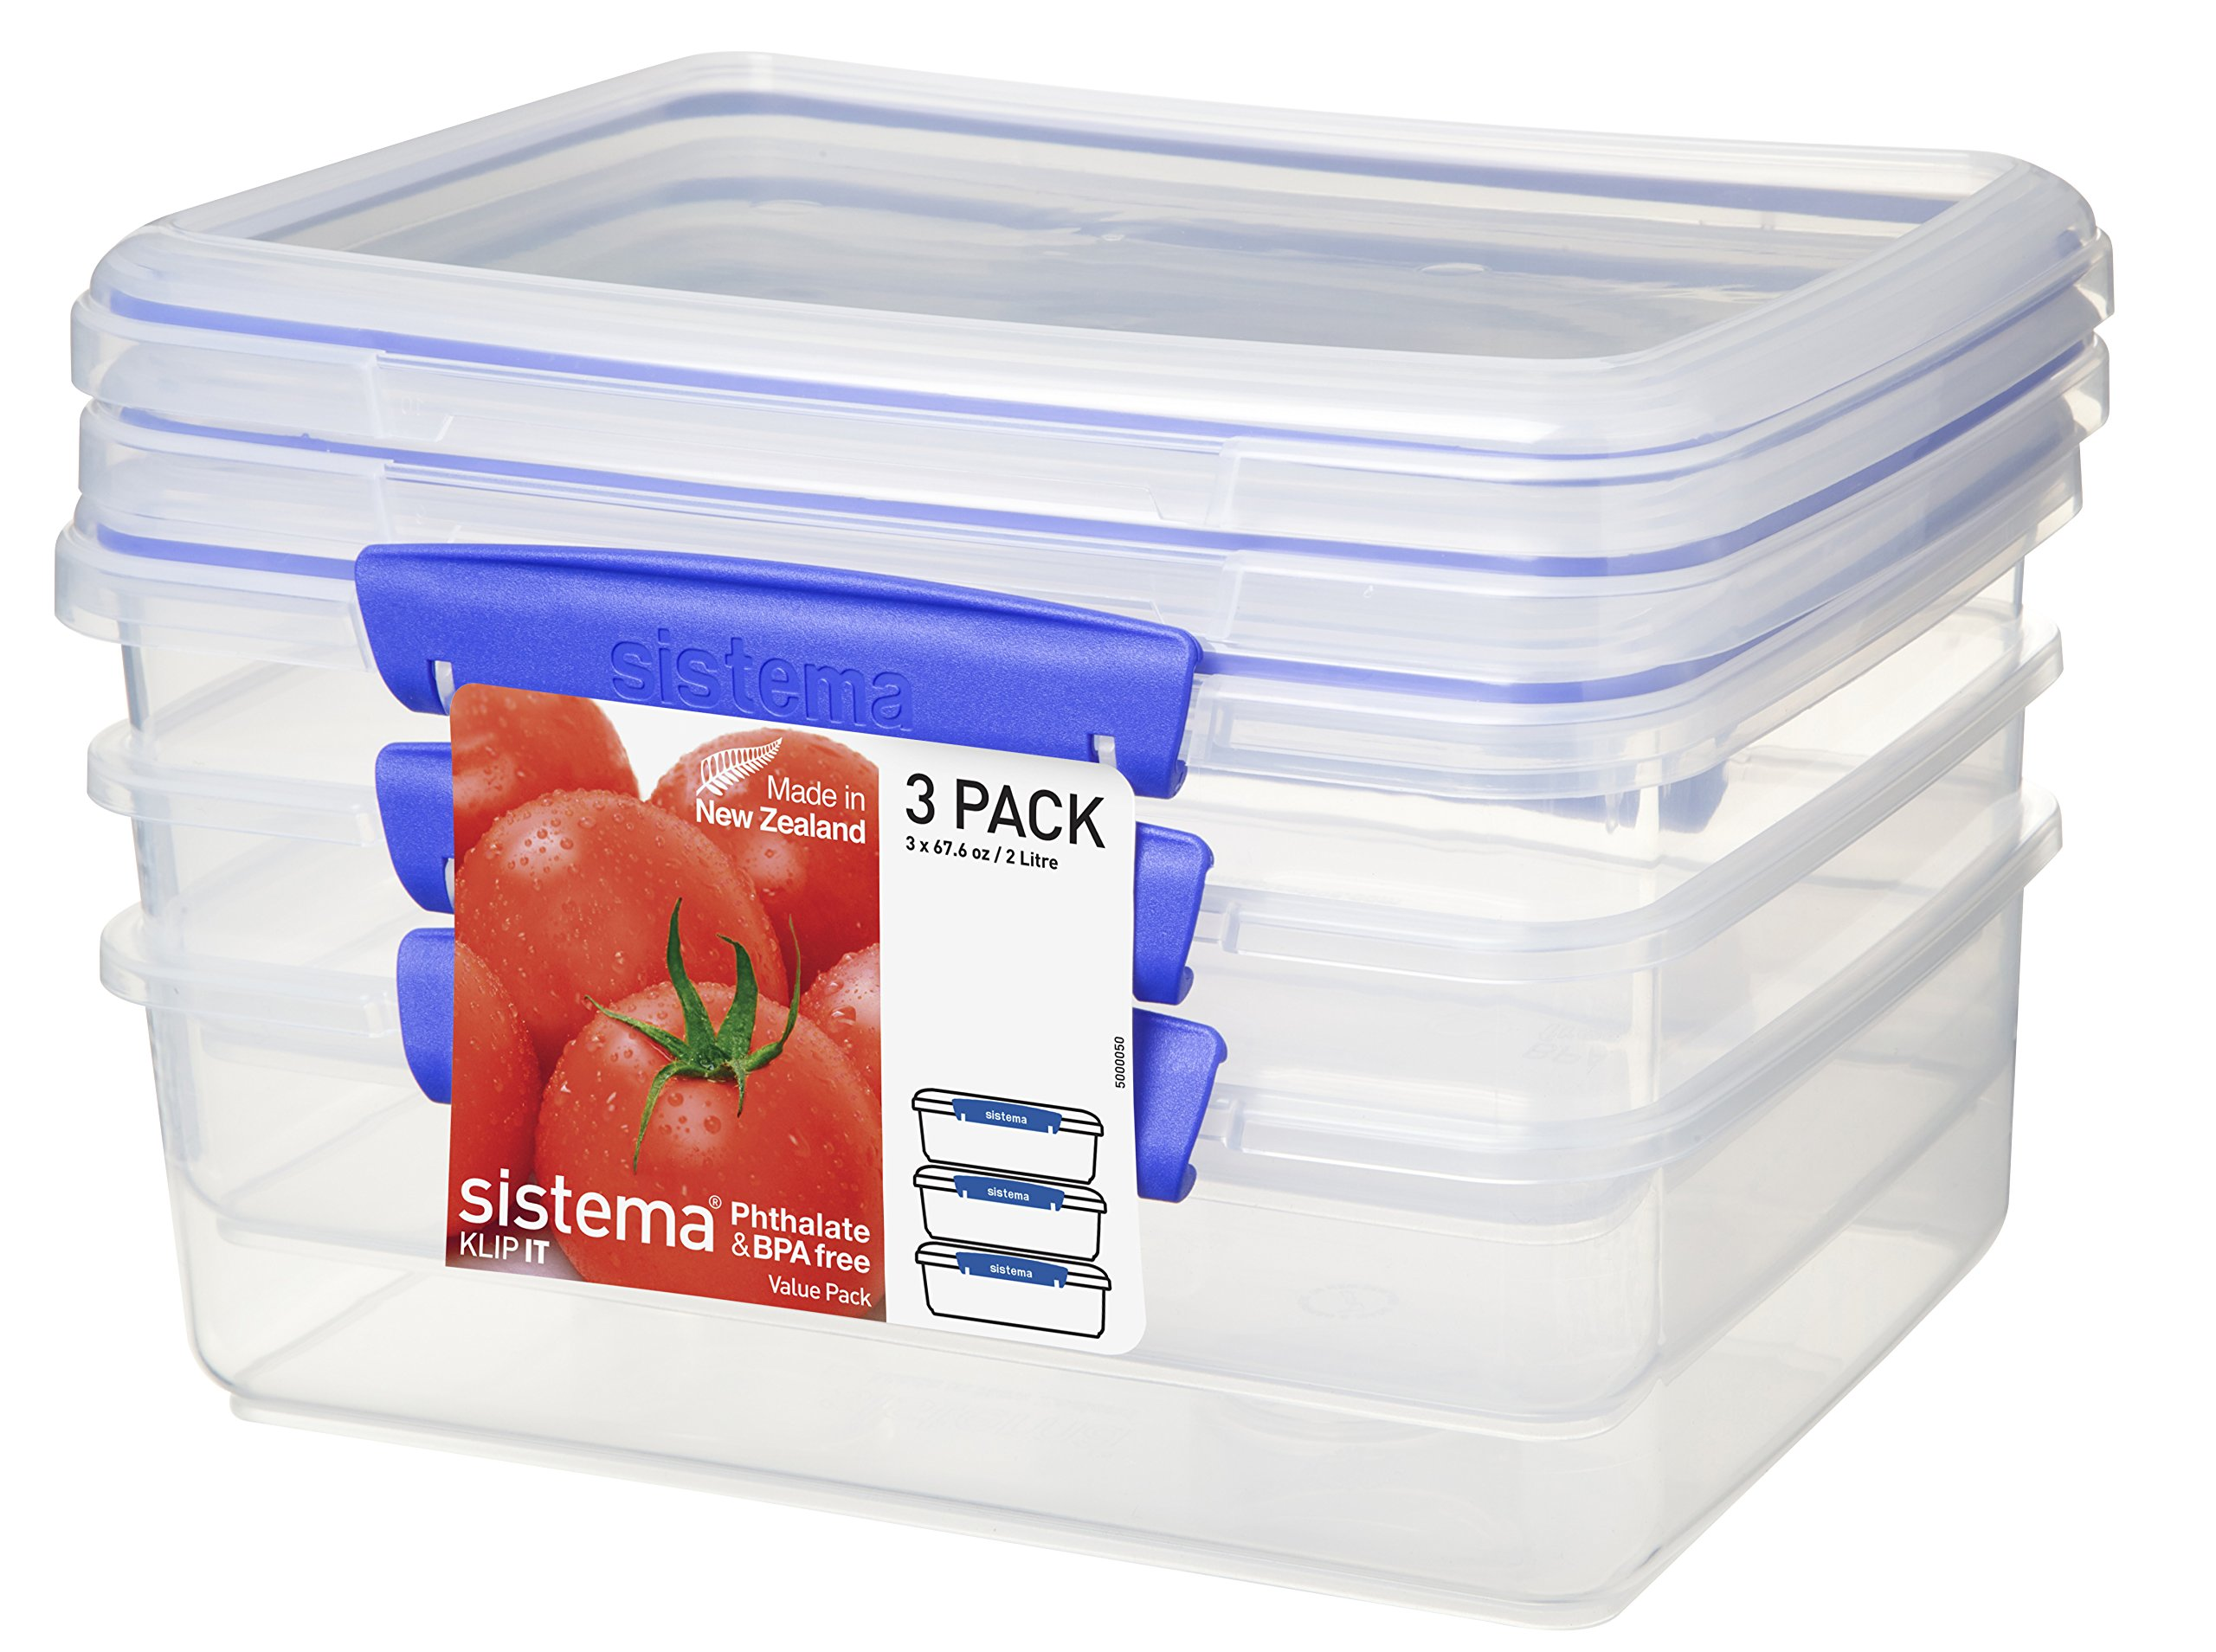 Sistema Klip It Collection Rectangle Food Storage Containers 67 ounce/ 8.4 Cup each, Set of 3 (1723)